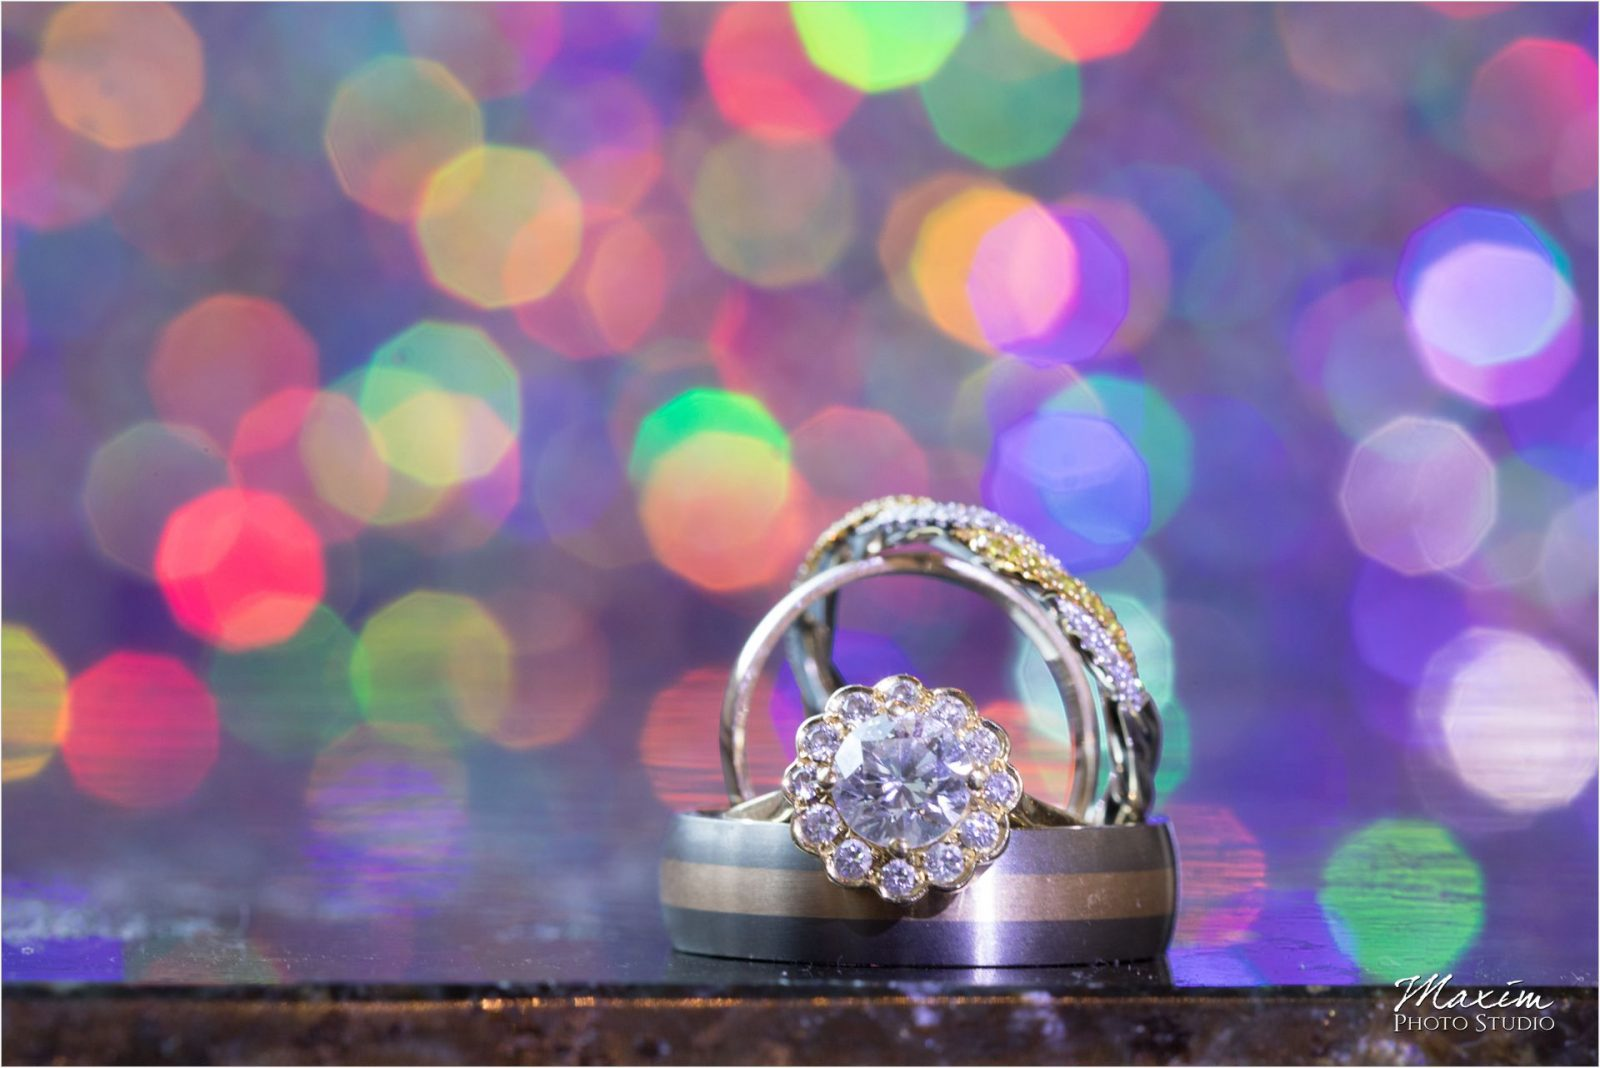 The Phoenix Cincinnati Wedding ring